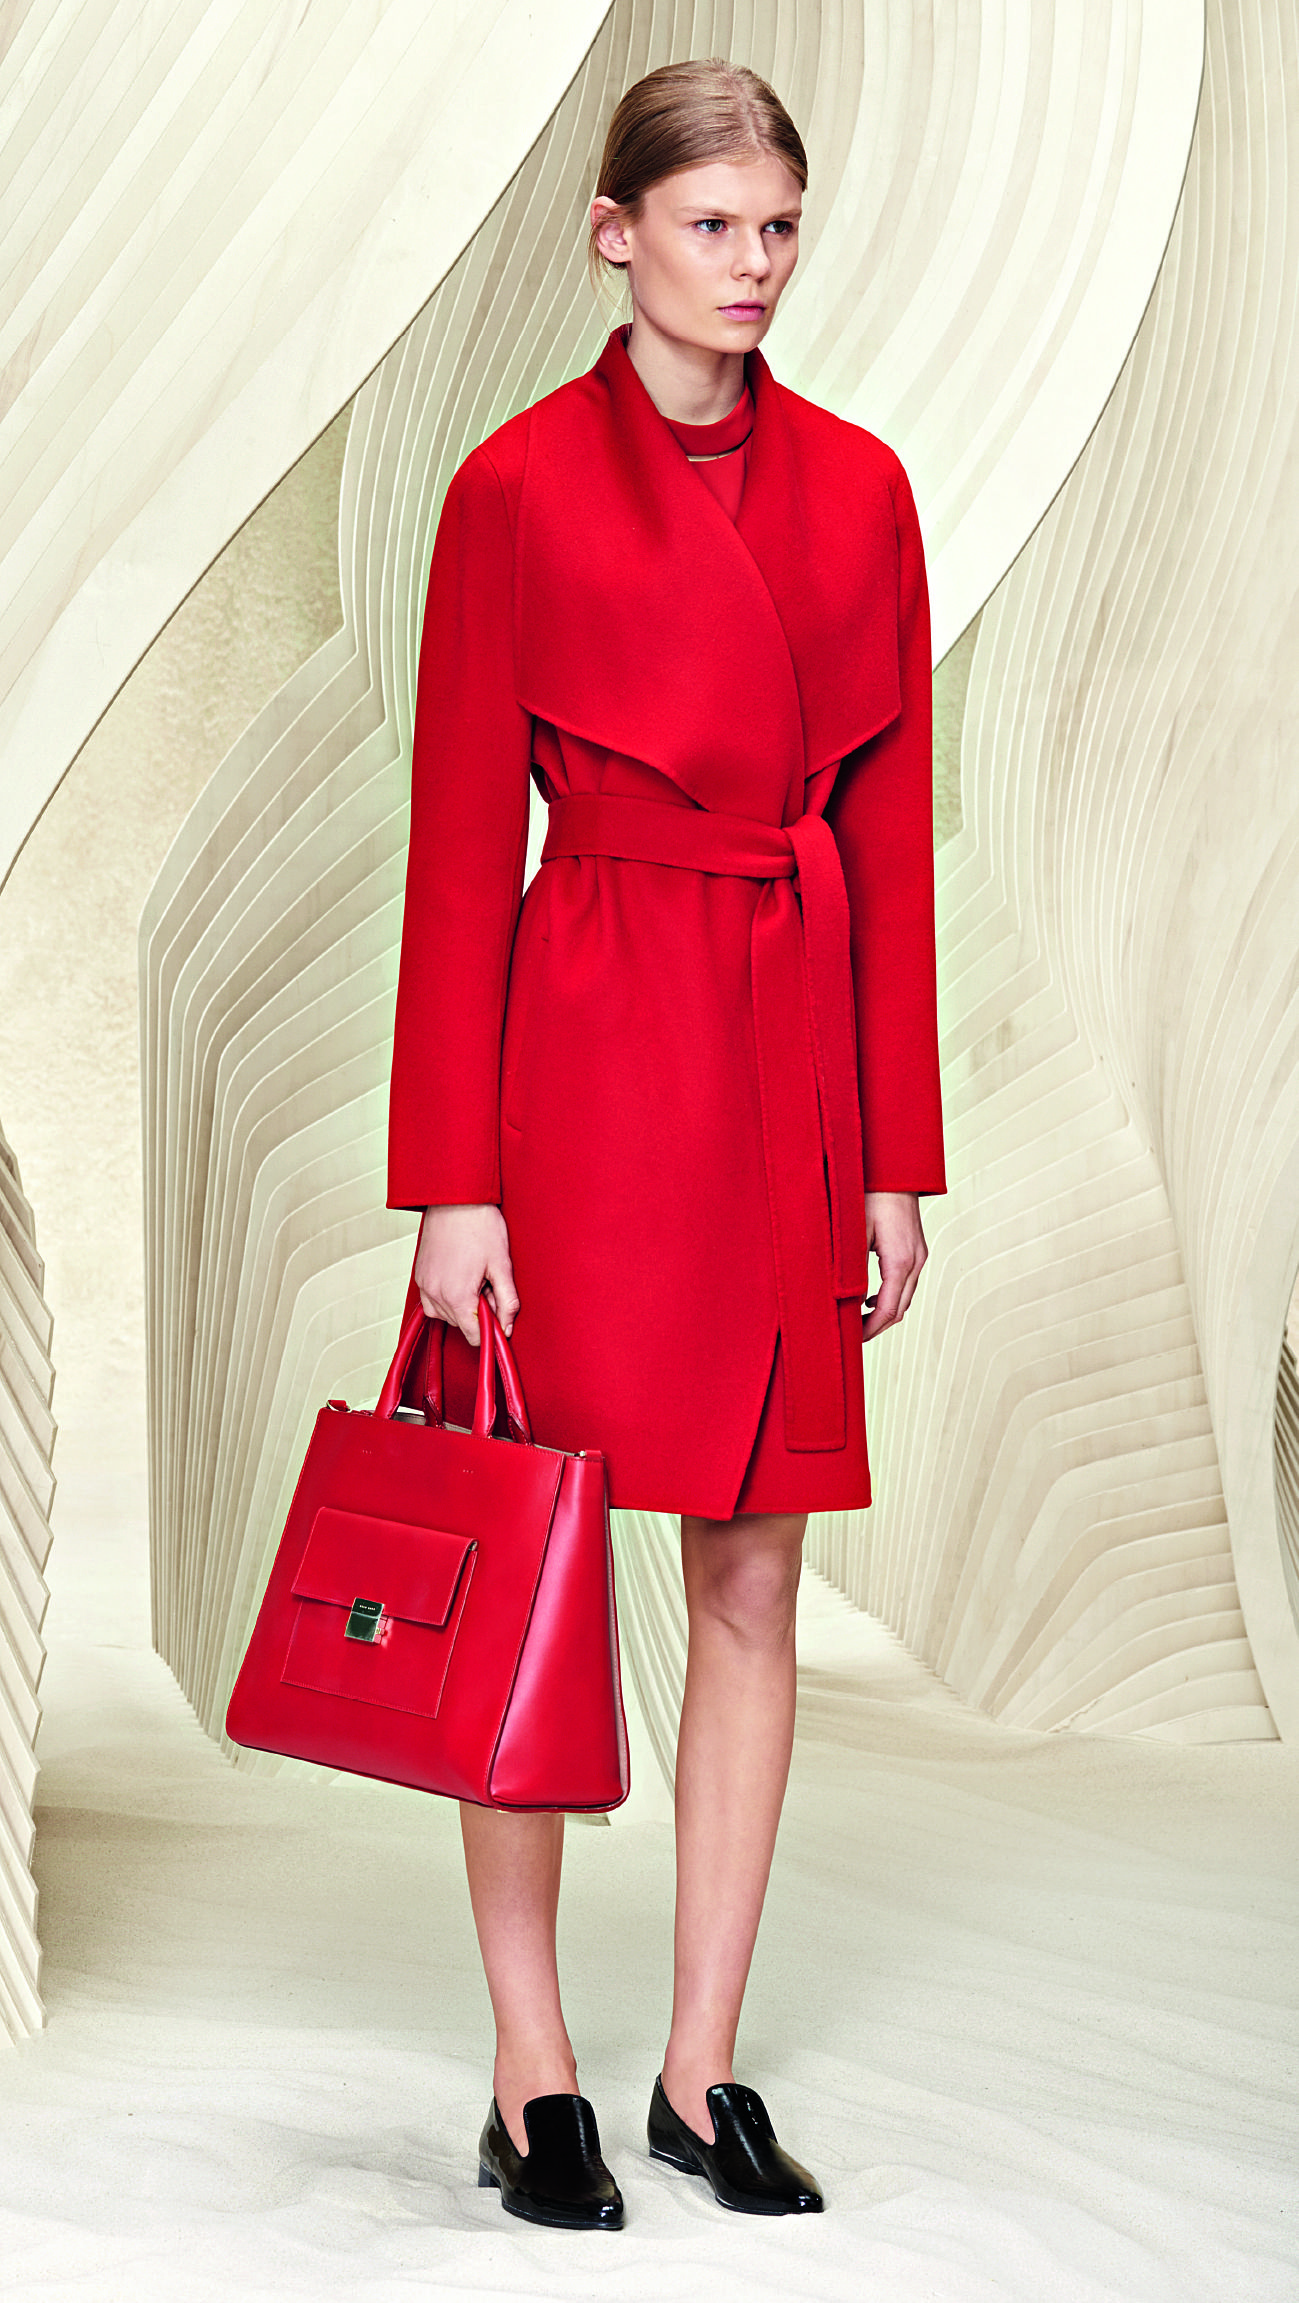 Complete in red - new bag and outerwear from the BOSS #resort2016 collection